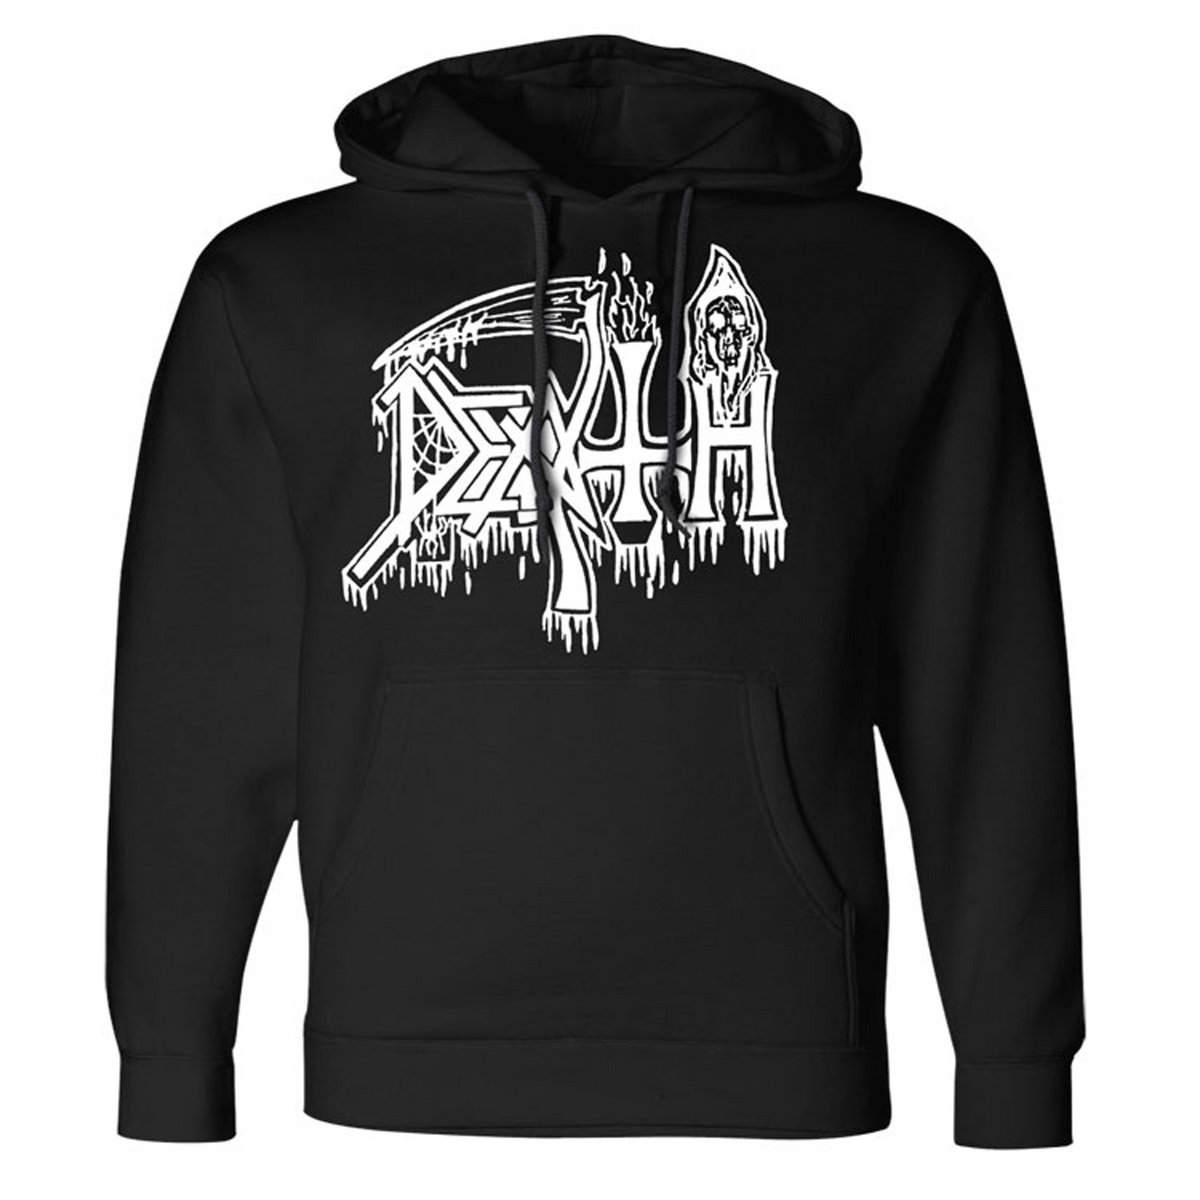 Do you love me v2 rehearsals 08 20 1986 death death old logo pullover biocorpaavc Choice Image